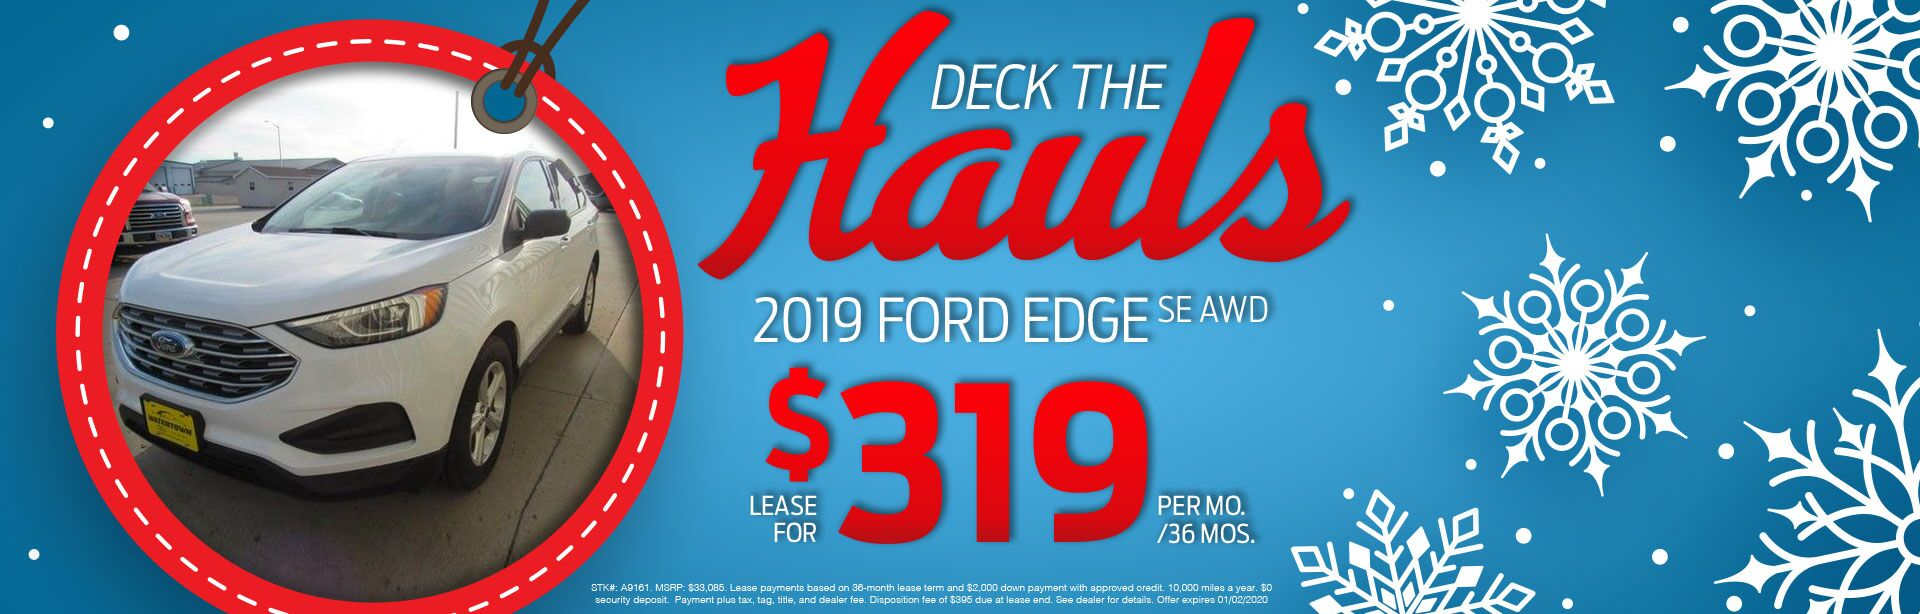 2019 Ford Edge SE AWD Lease for $319 Per Month For 36 Months